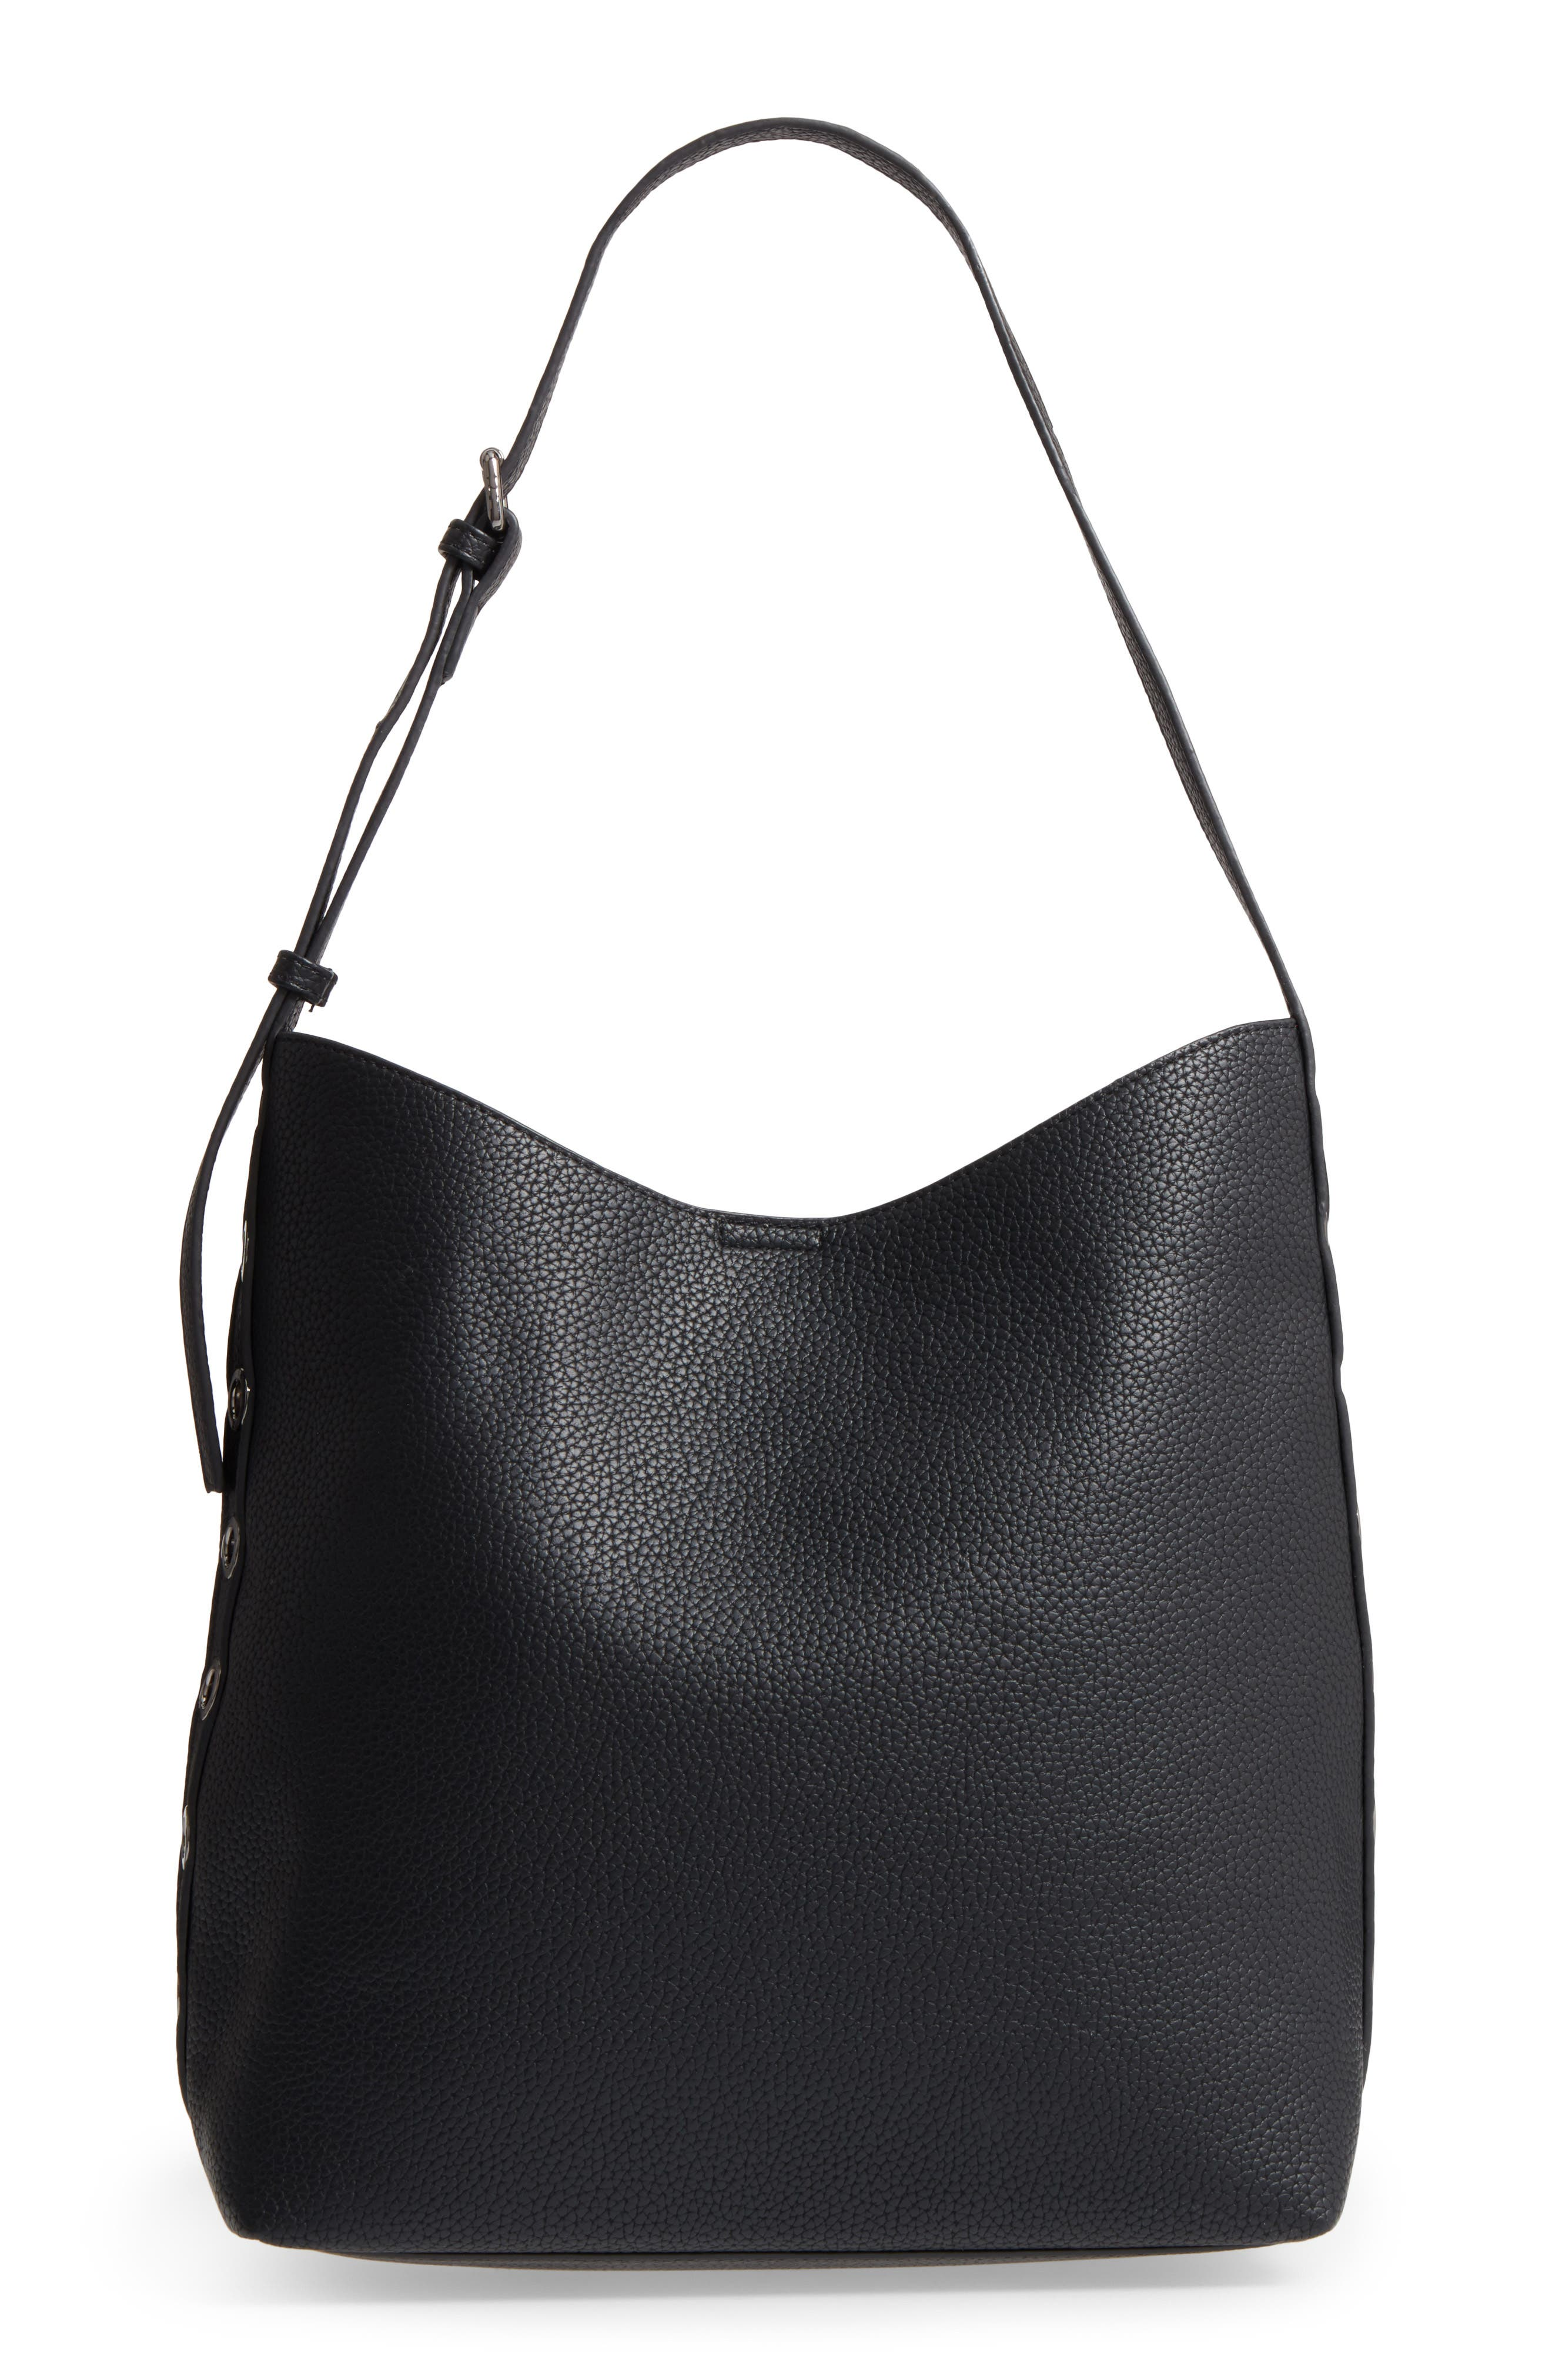 Samara Faux Leather Shoulder Bag,                             Main thumbnail 1, color,                             Black